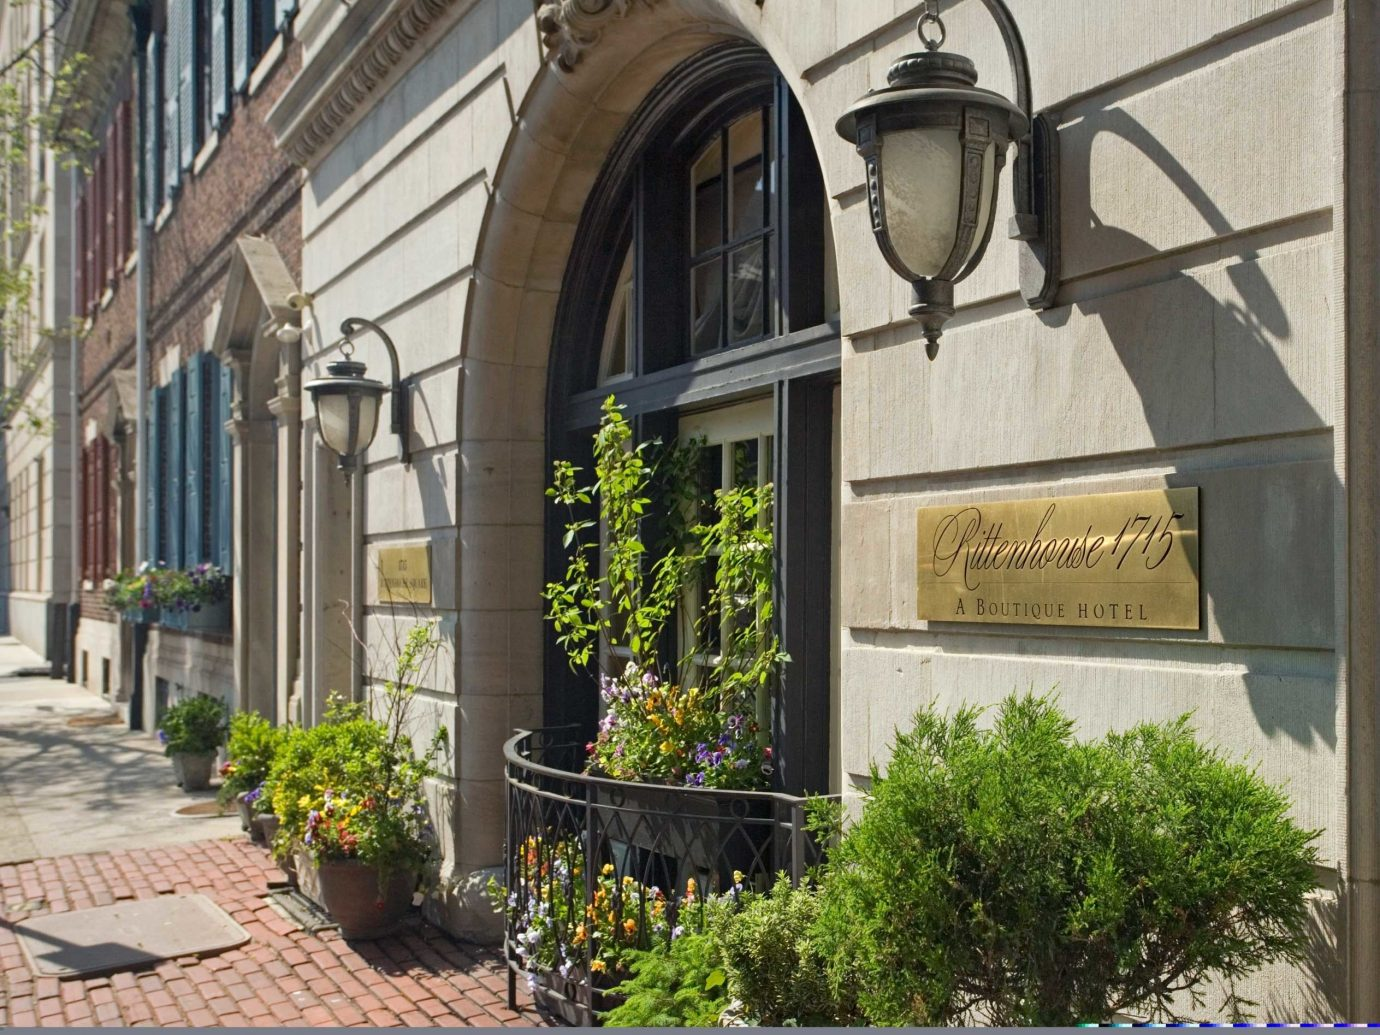 Boutique Boutique Hotels Classic Elegant Exterior Historic Hotels Inn Philadelphia building outdoor property Architecture facade Courtyard home estate arch window mansion chapel stone Garden